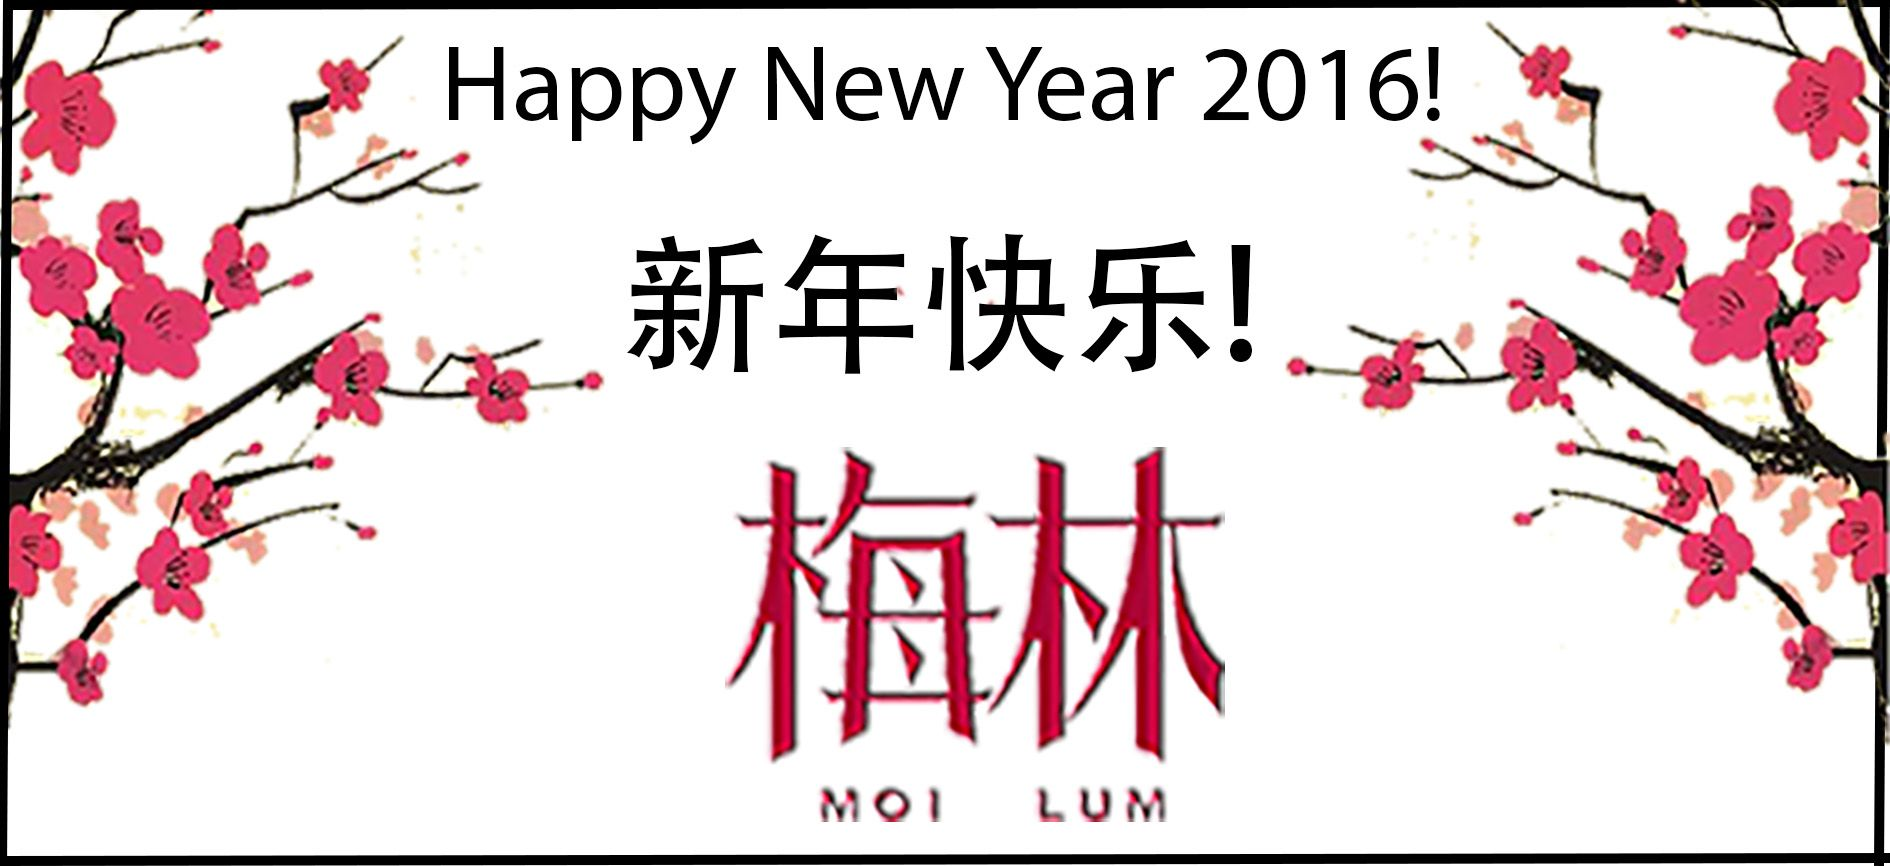 New Year Greetings From Moi Lum Restaurant New Year Greetings